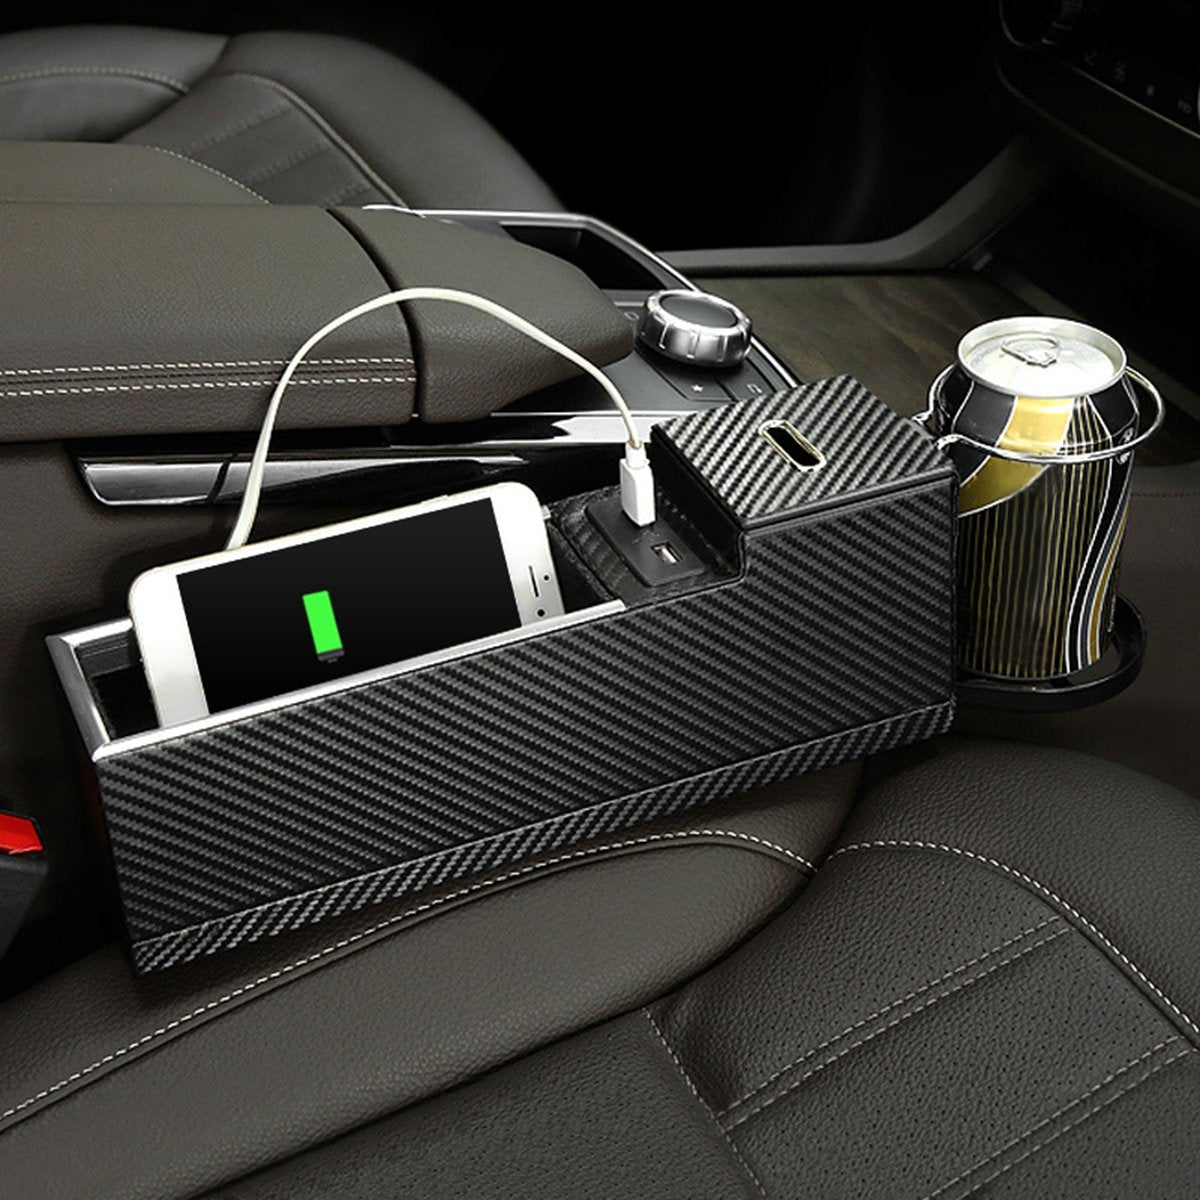 USB Charger Car Seat Crevice Storage Box Seat Gap Filler Organizer Cup Holder